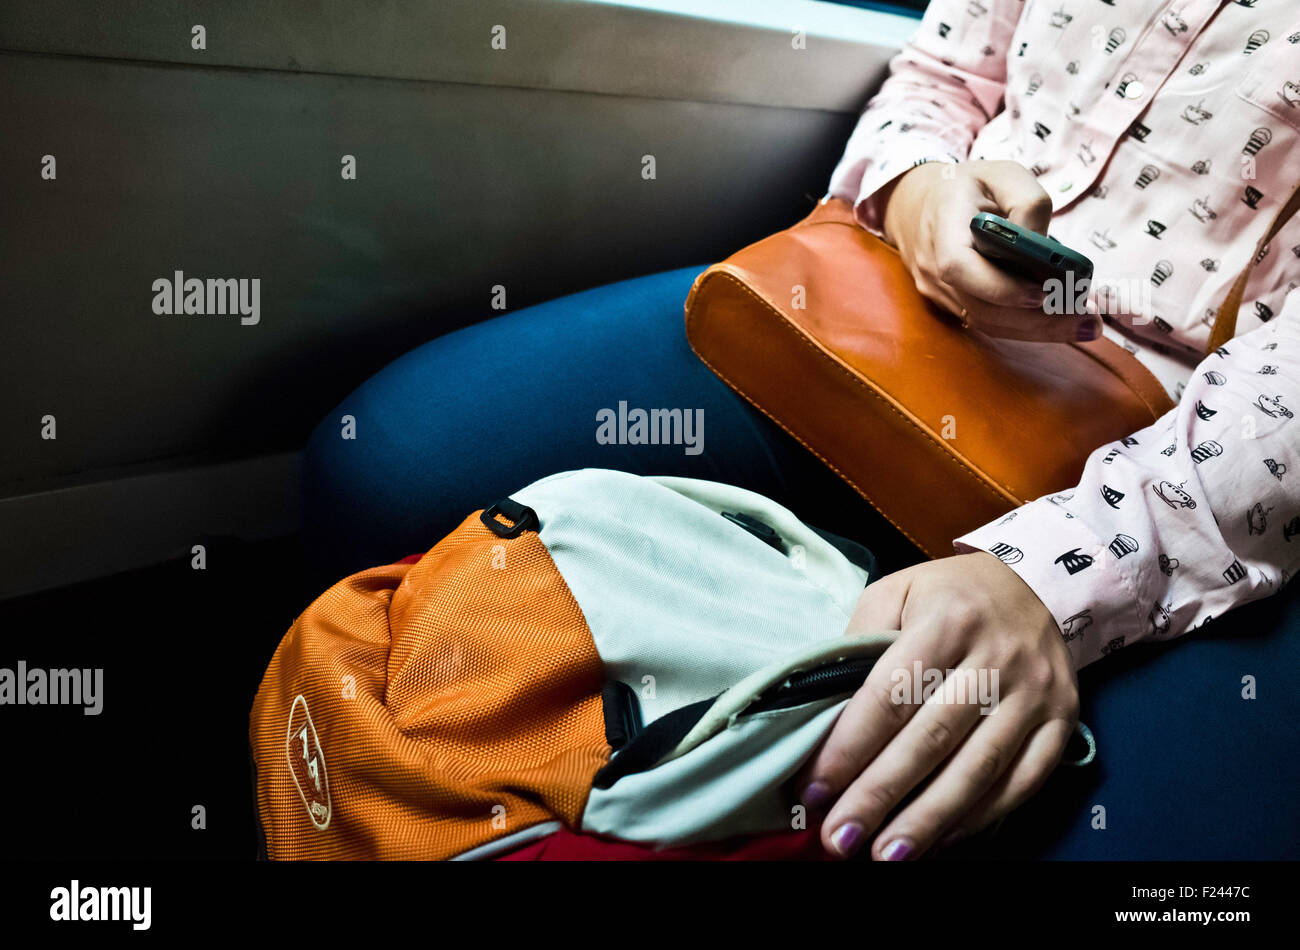 close up of a woman in the bus browsing Internet on her smartphone - Stock Image